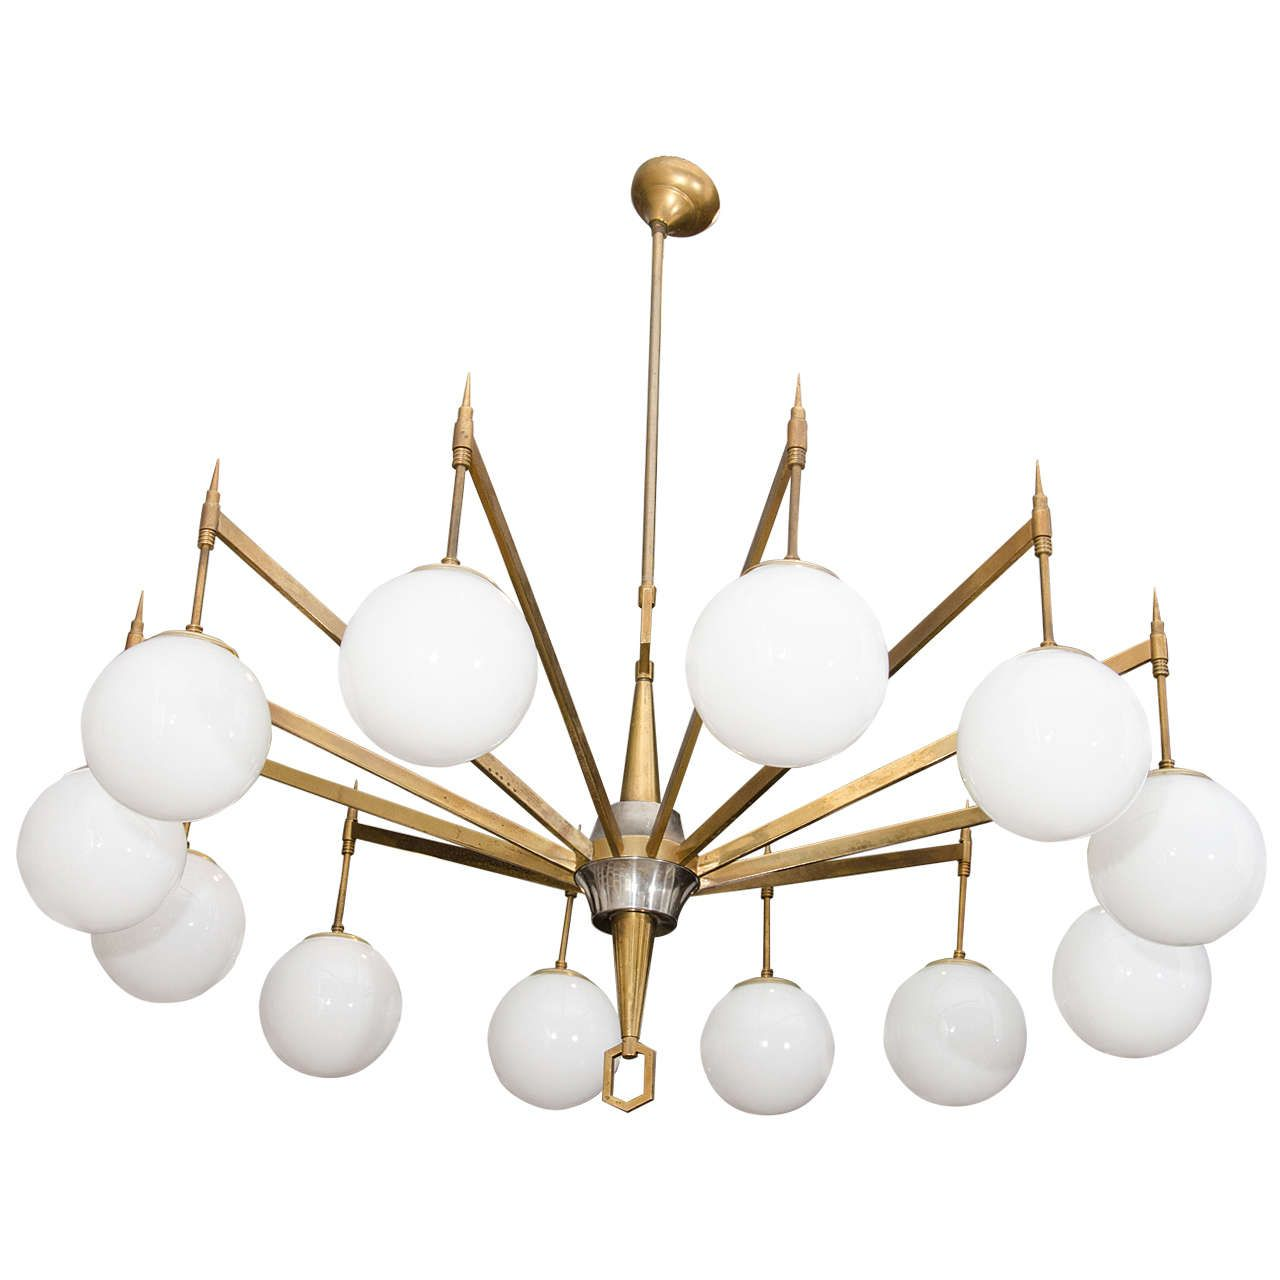 12 Arm Brass Chandelier With White Opaque Globes 1stdibs Com Brass Chandelier Chandeliers And Pendants Chandelier